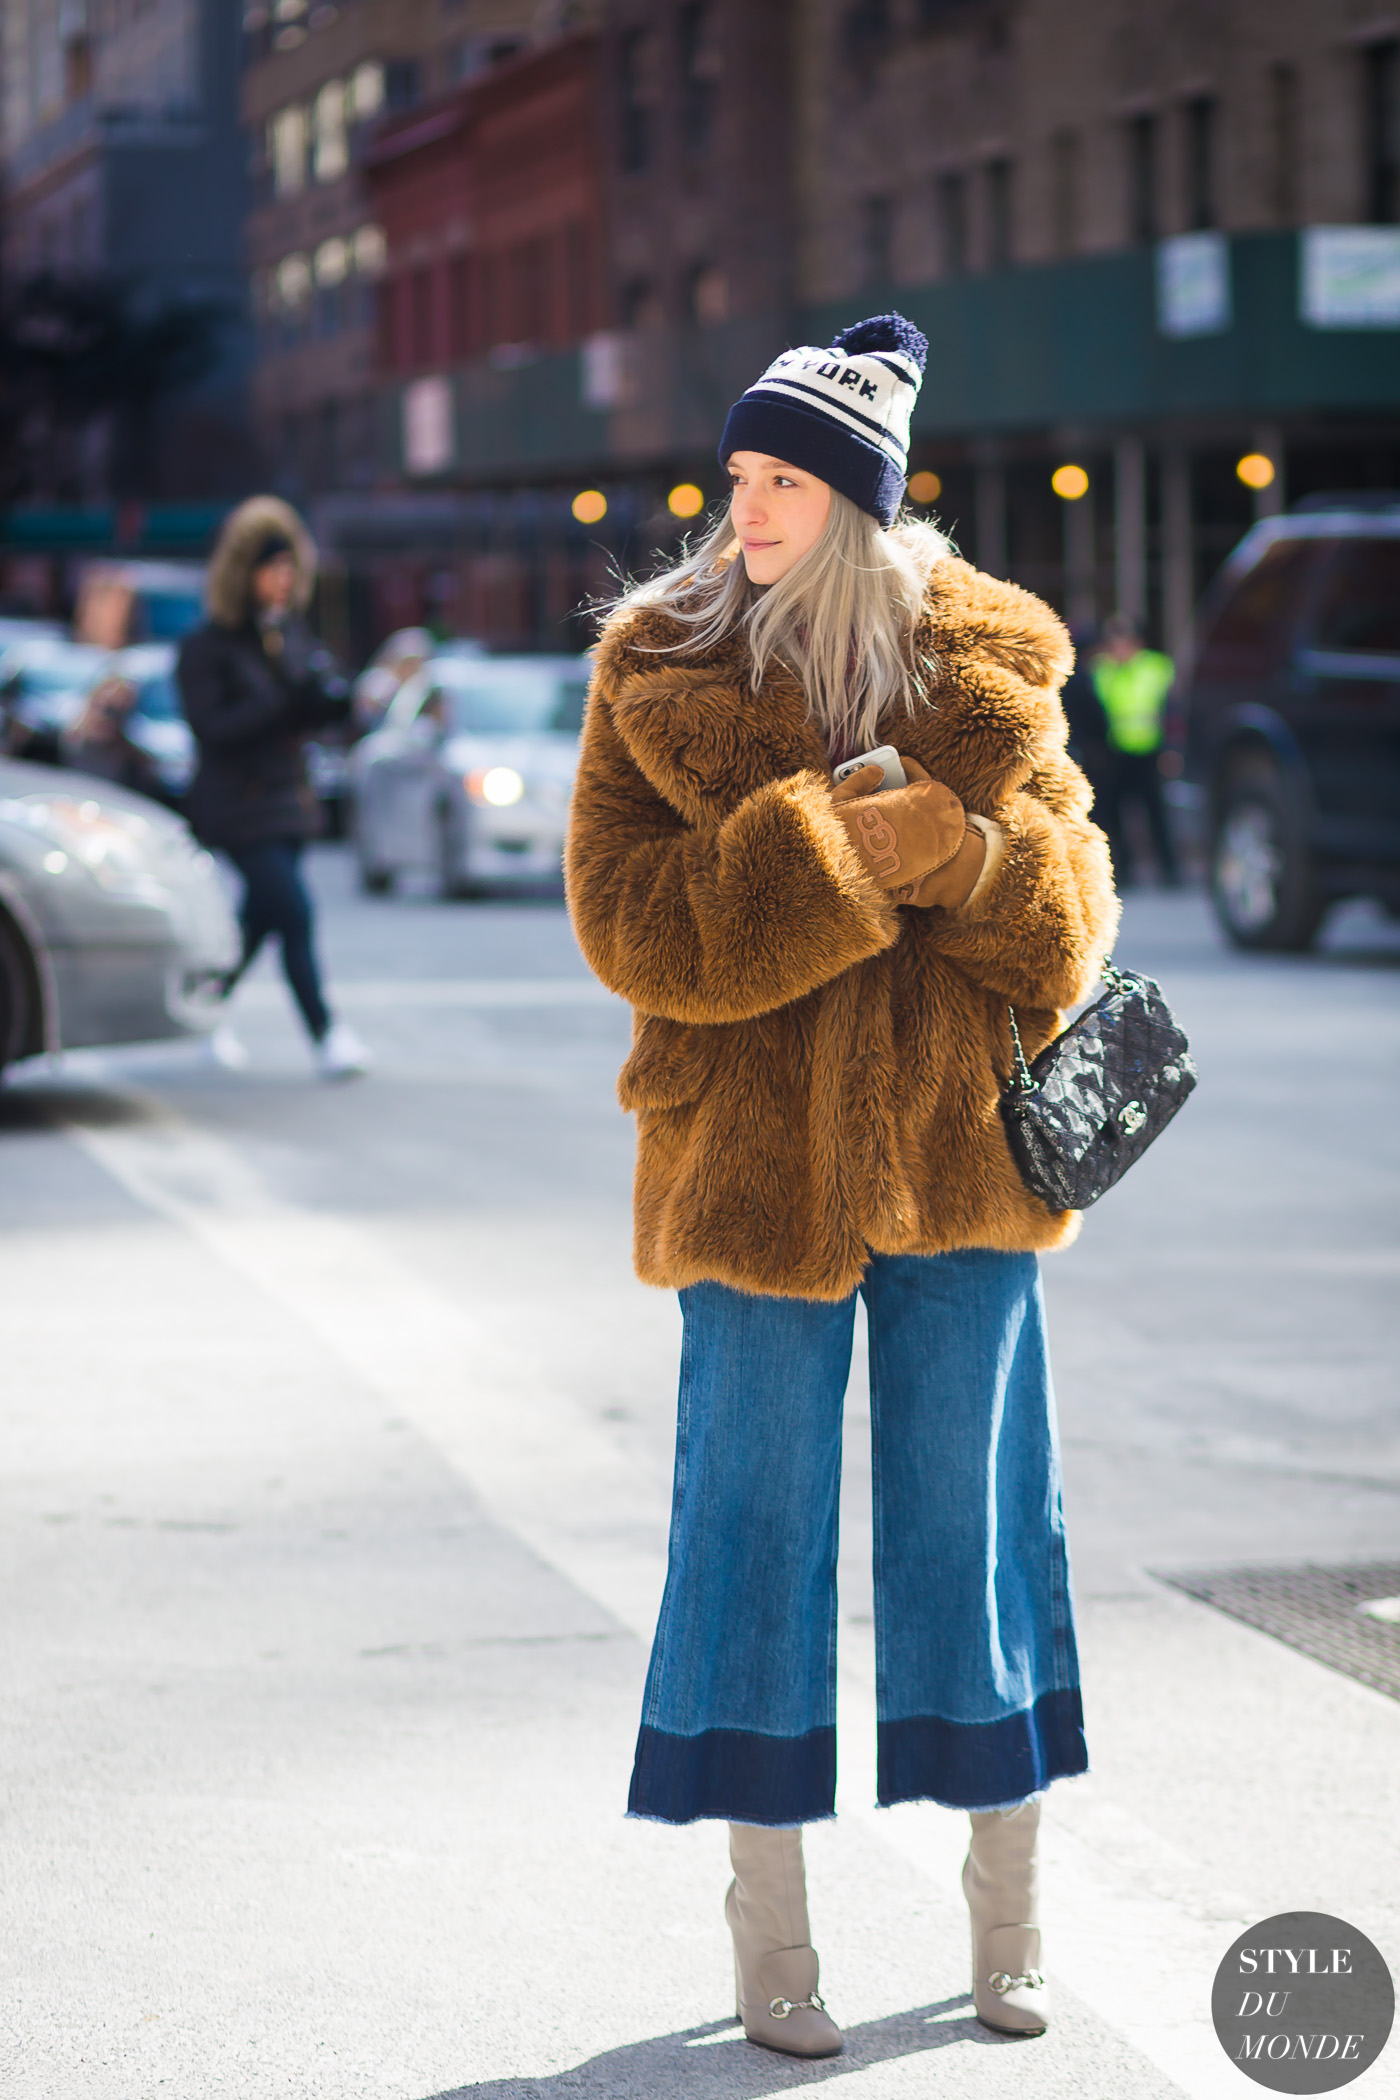 Charlotte Groeneveld The Fashionguitar Street Style Street Fashion Streetsnaps by STYLEDUMONDE Street Style Fashion Photography